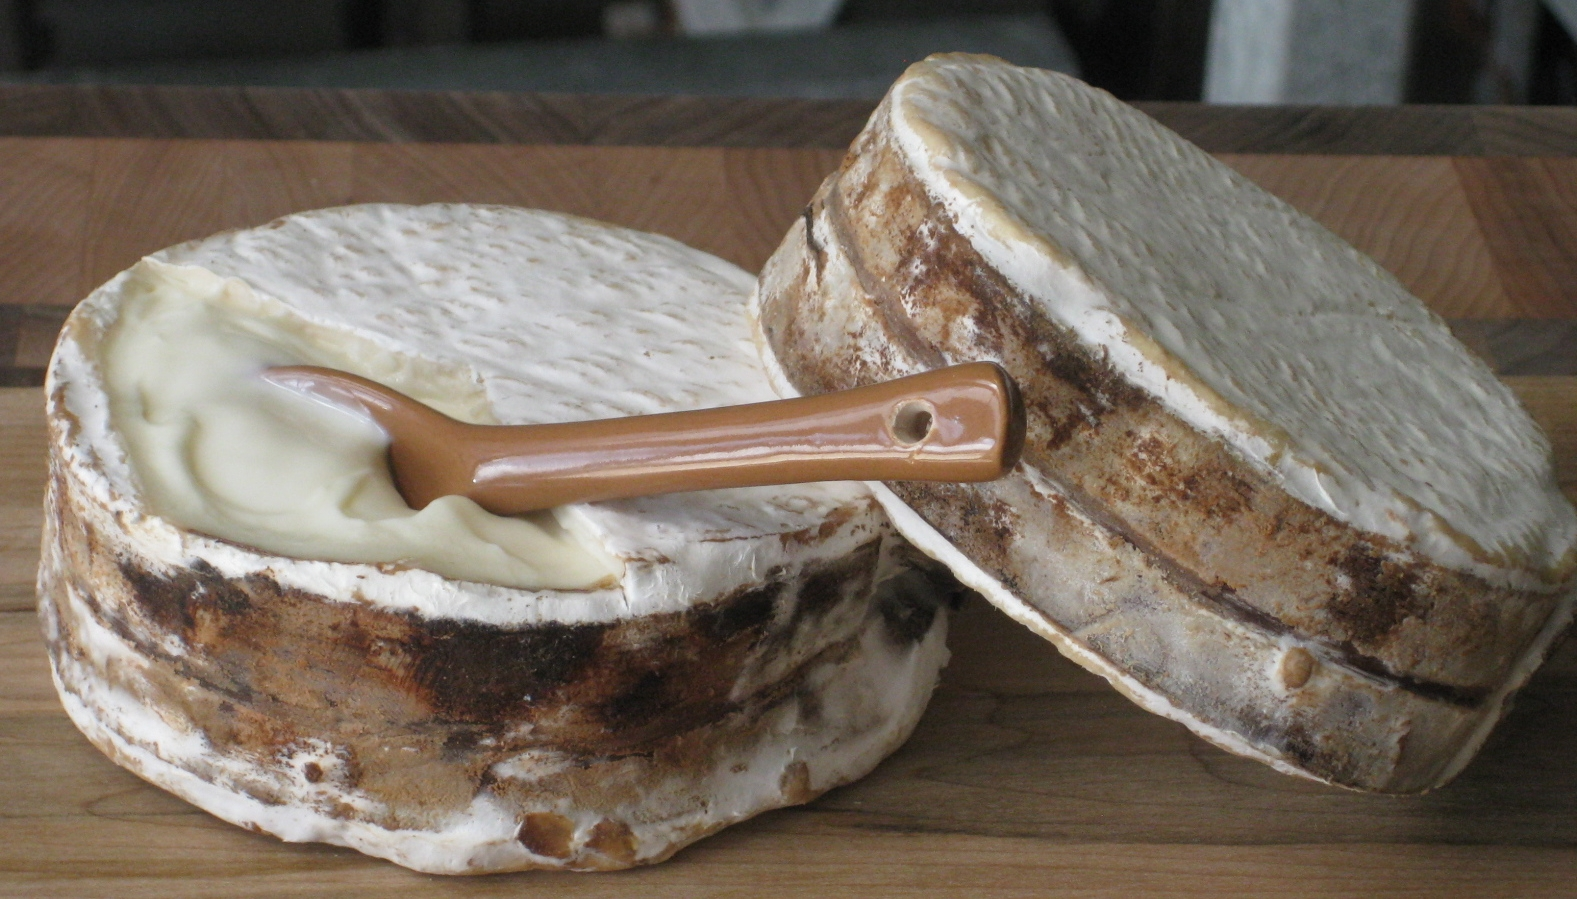 Image:   Jasper Hill Farm's Winnimere raw milk cheese is aged 60 days. Its rind, washed in local beer and bound with a strip of spruce bark, encloses an unctuous, satin interior that harbours scents of fruit and smoke and has mellow richness with tangy undertones of earth. Image via  The Cheese Shop .